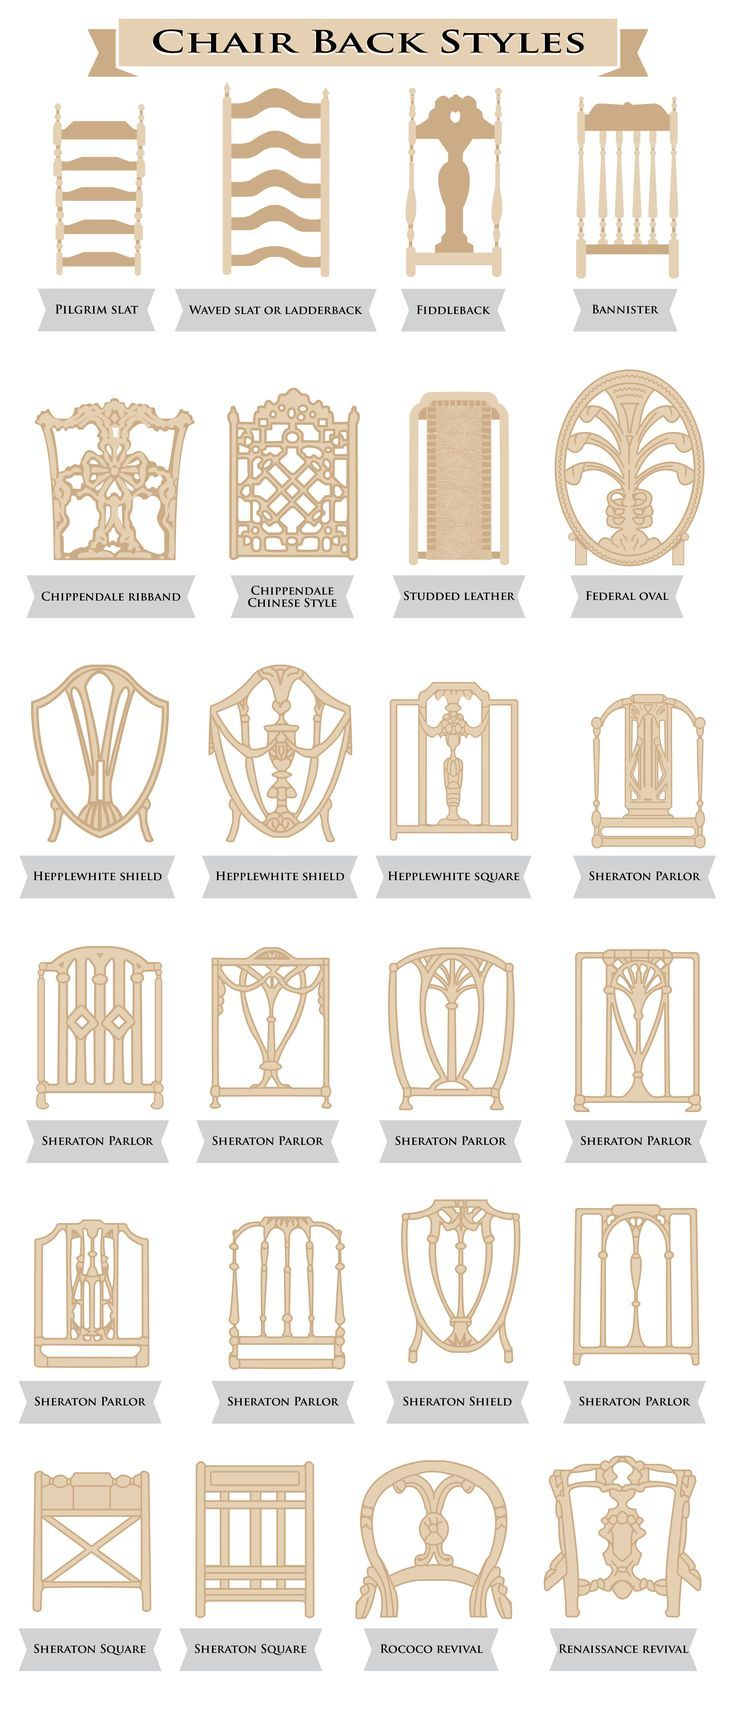 The Ultimate Chair Back Styles Guide 24 Illustrated Styles